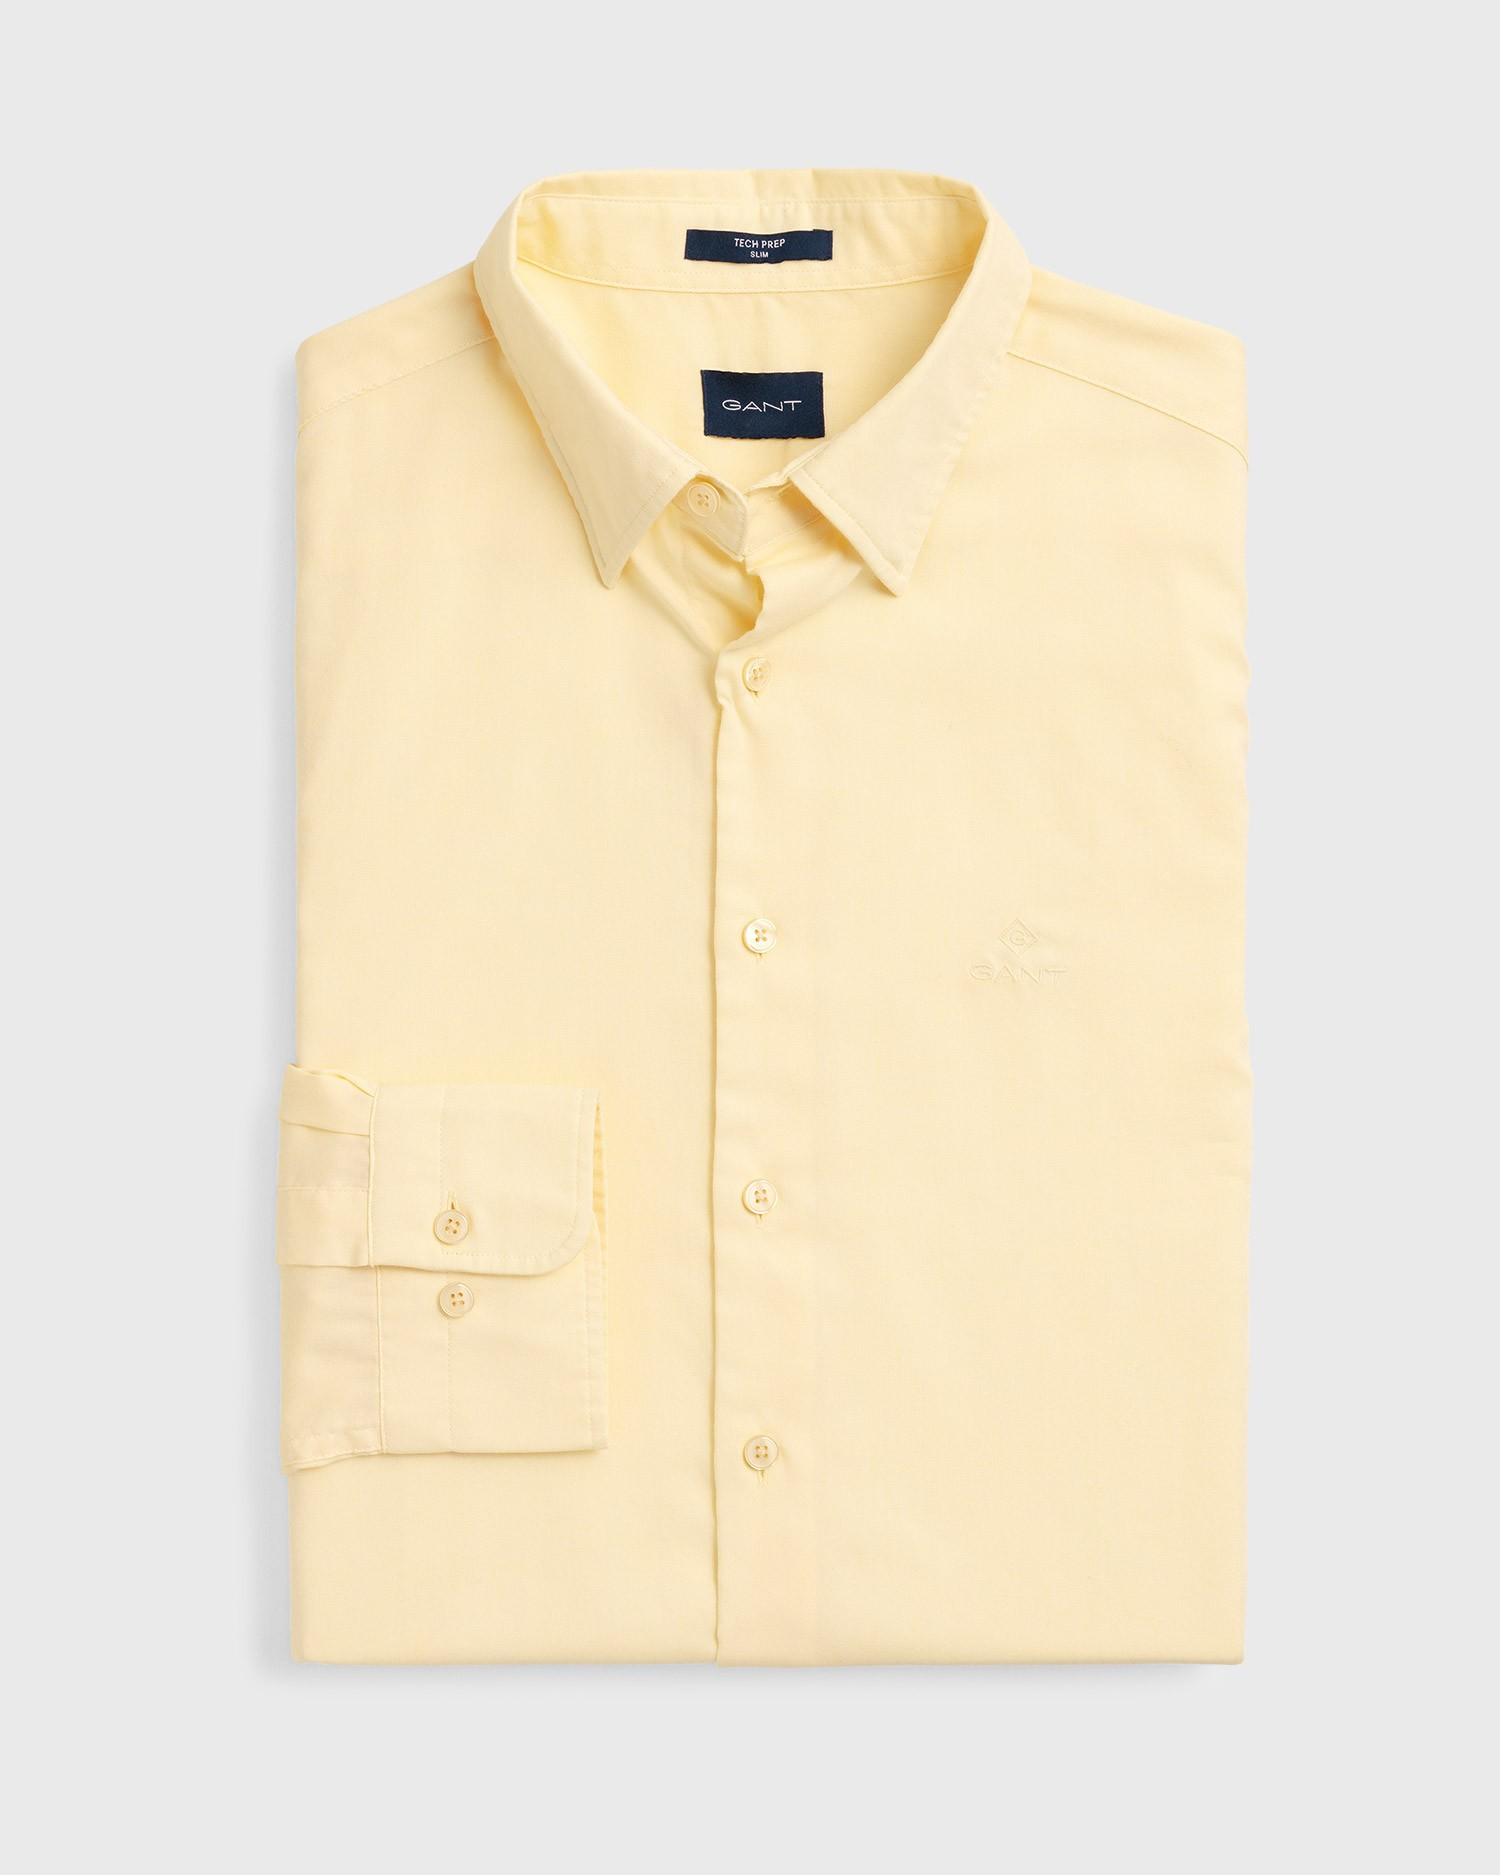 GANT Men's Oxford Slim Fit Shirt - 3005132